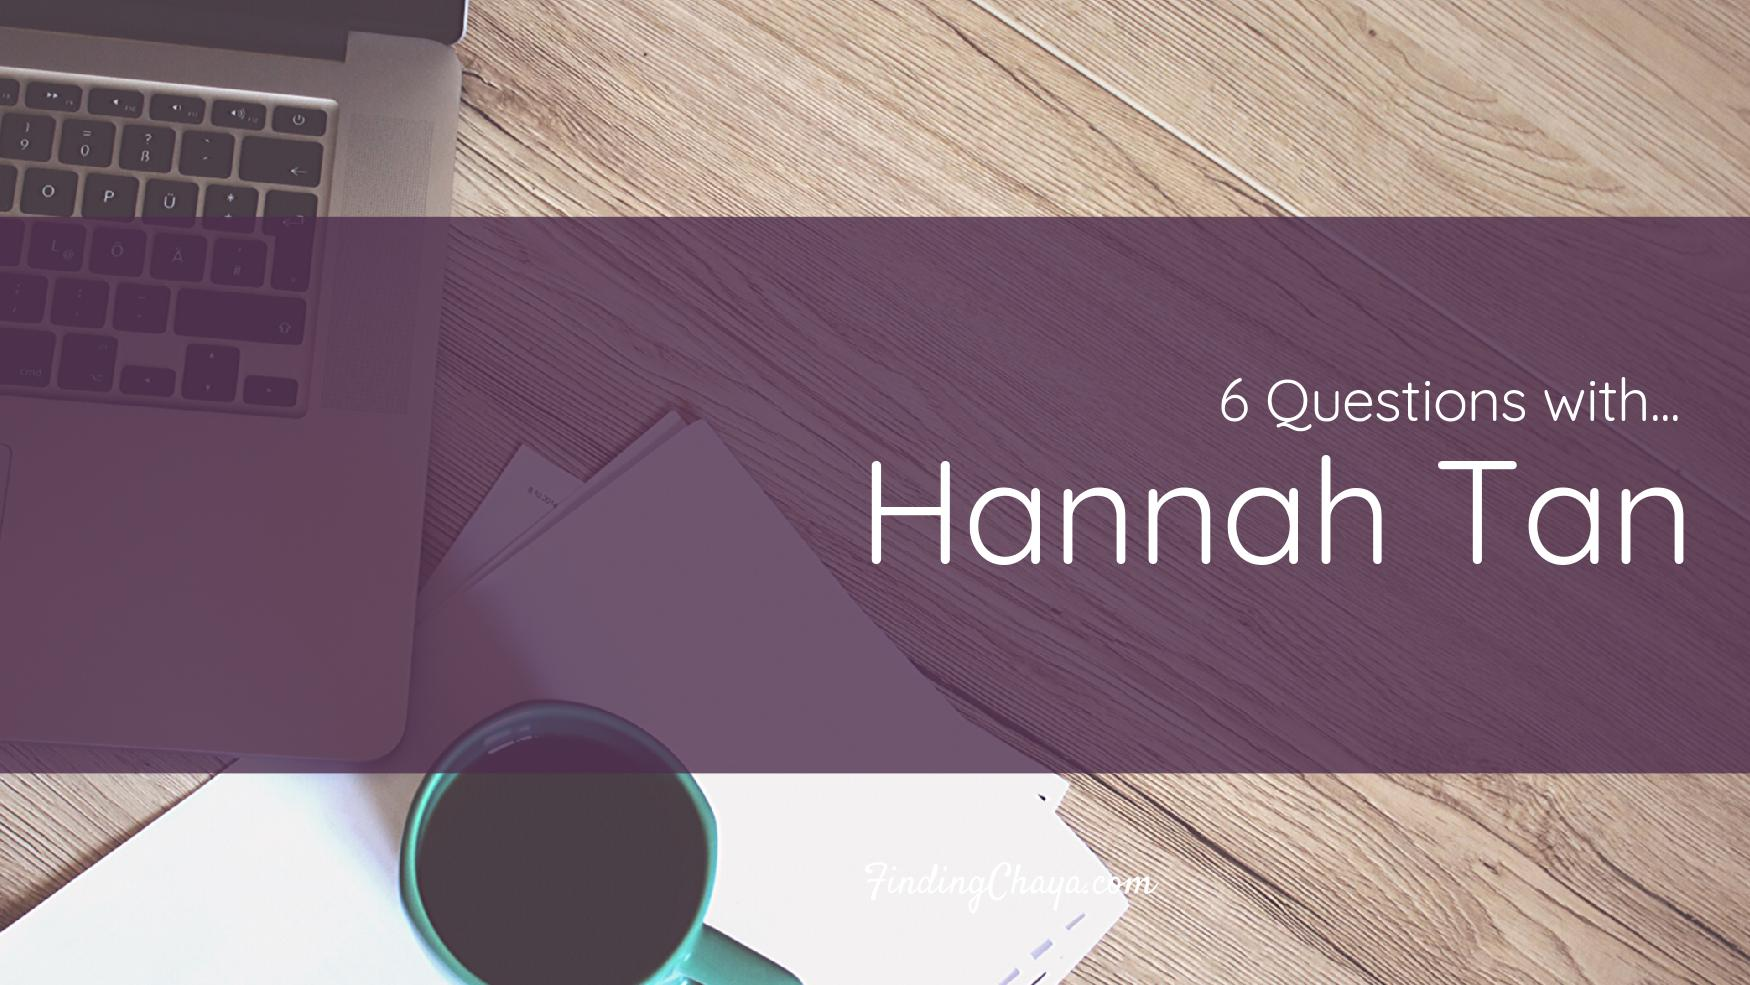 6 Questions with Hannah Tan